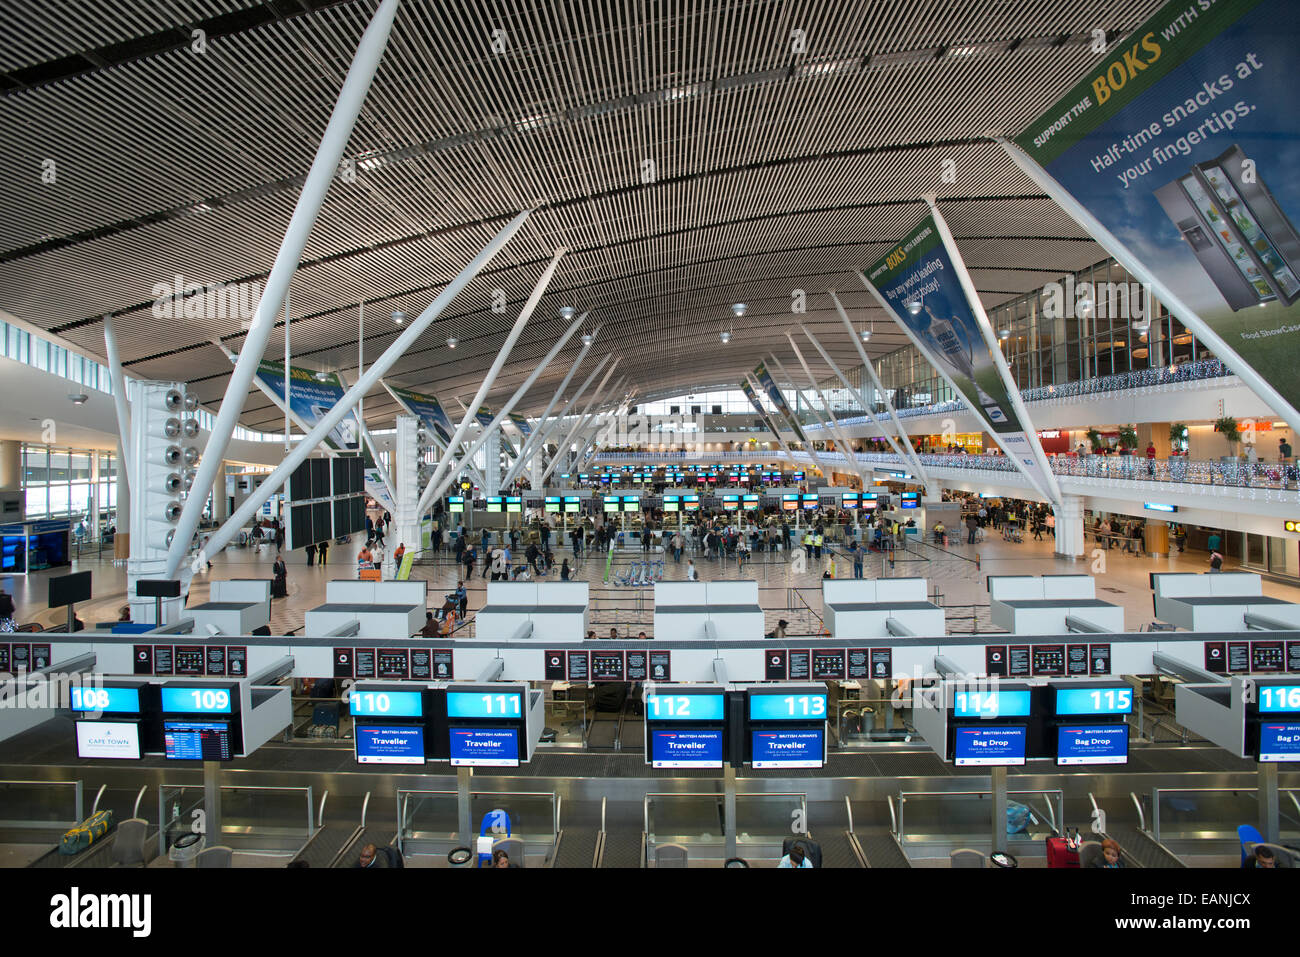 Departure hall with check-in desks, Cape Town International Airport, Western Cape, South Africa - Stock Image